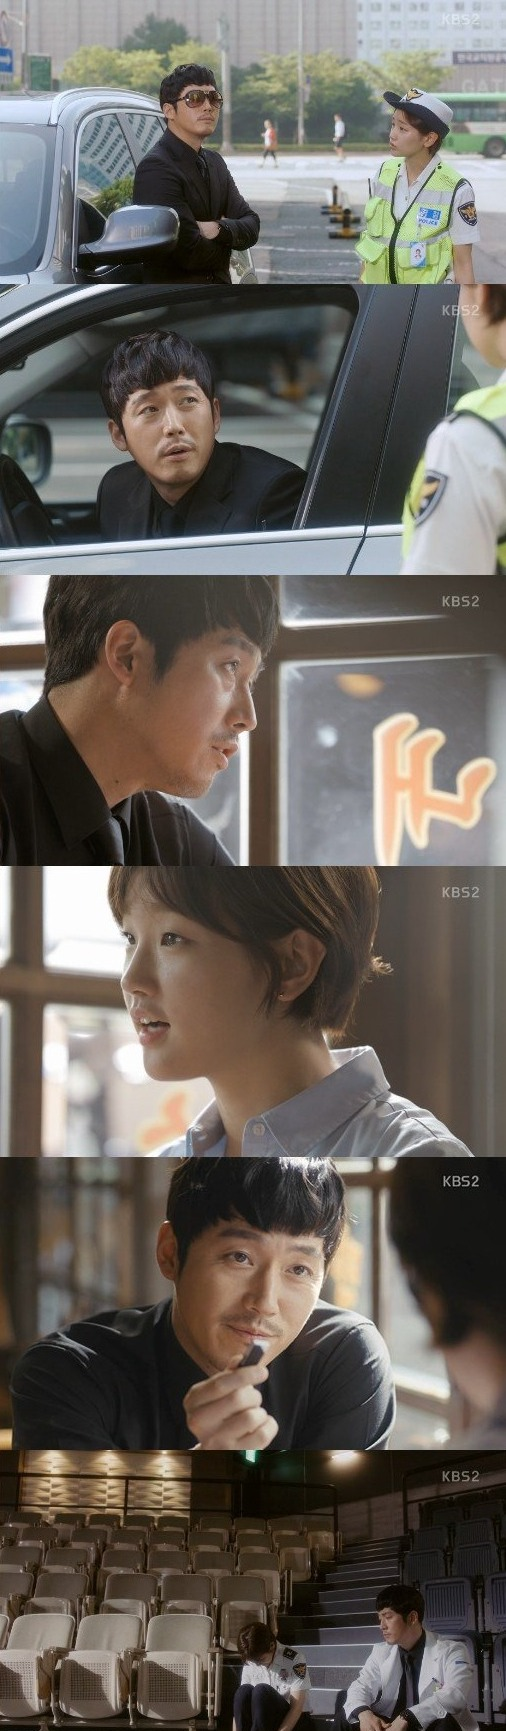 Spoiler Added Episode 8 Captures For The Korean Drama Beautiful